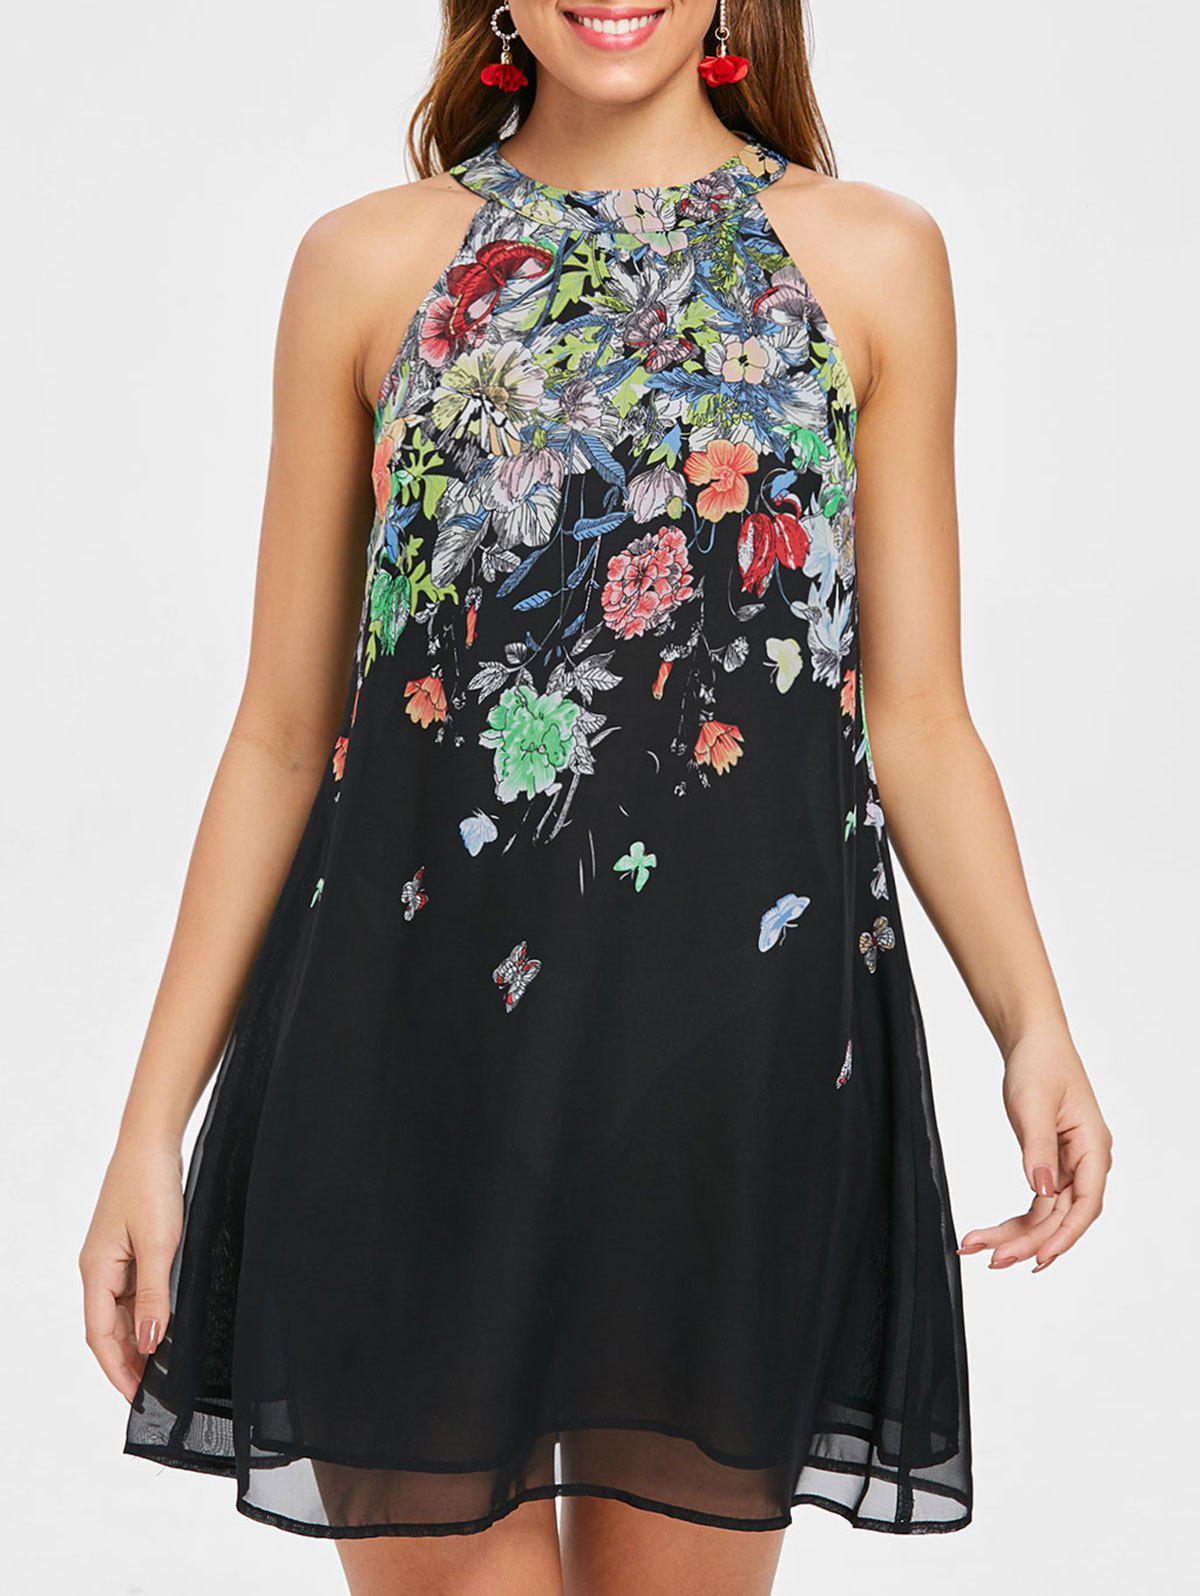 Flower Printed Jewel Neck Swing Dress - BLACK M